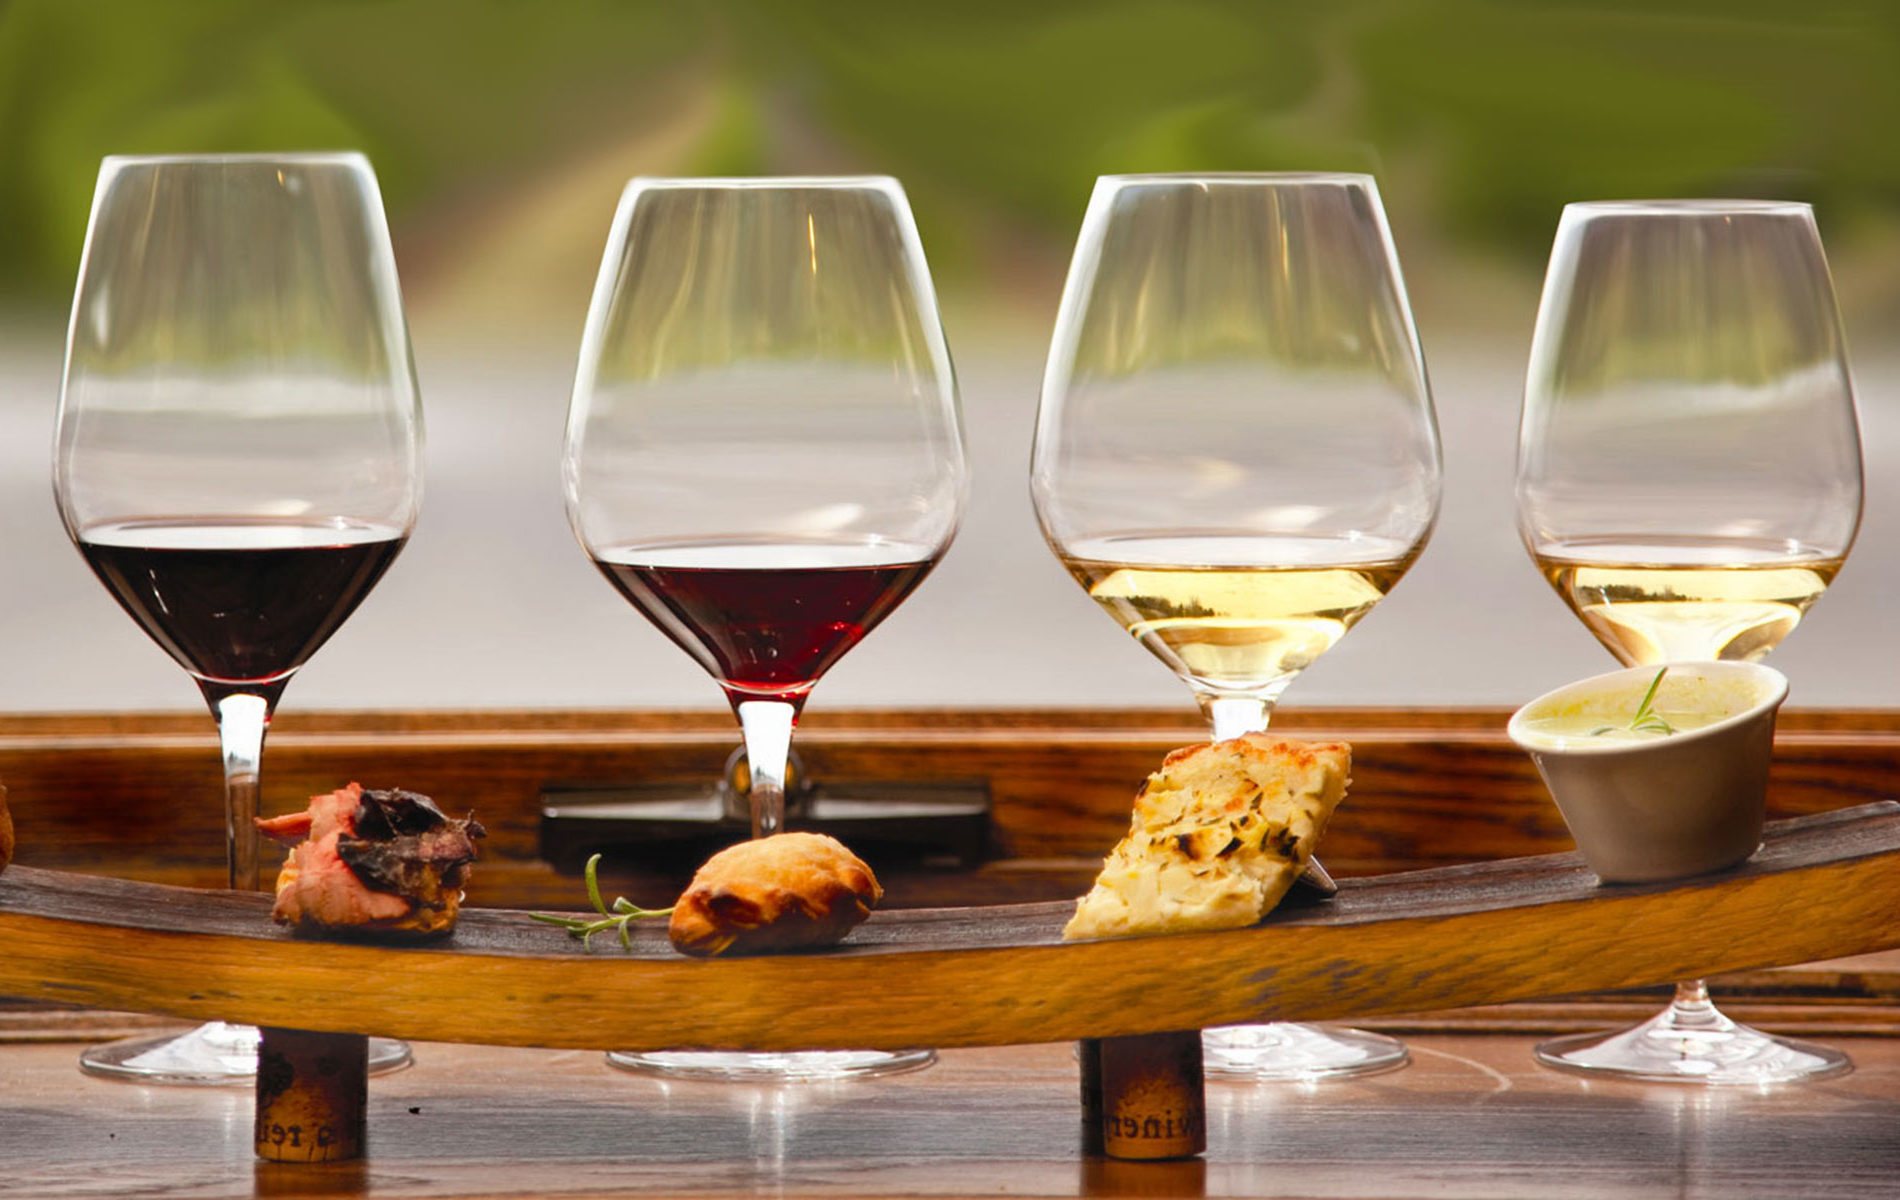 Wine and Food tasting